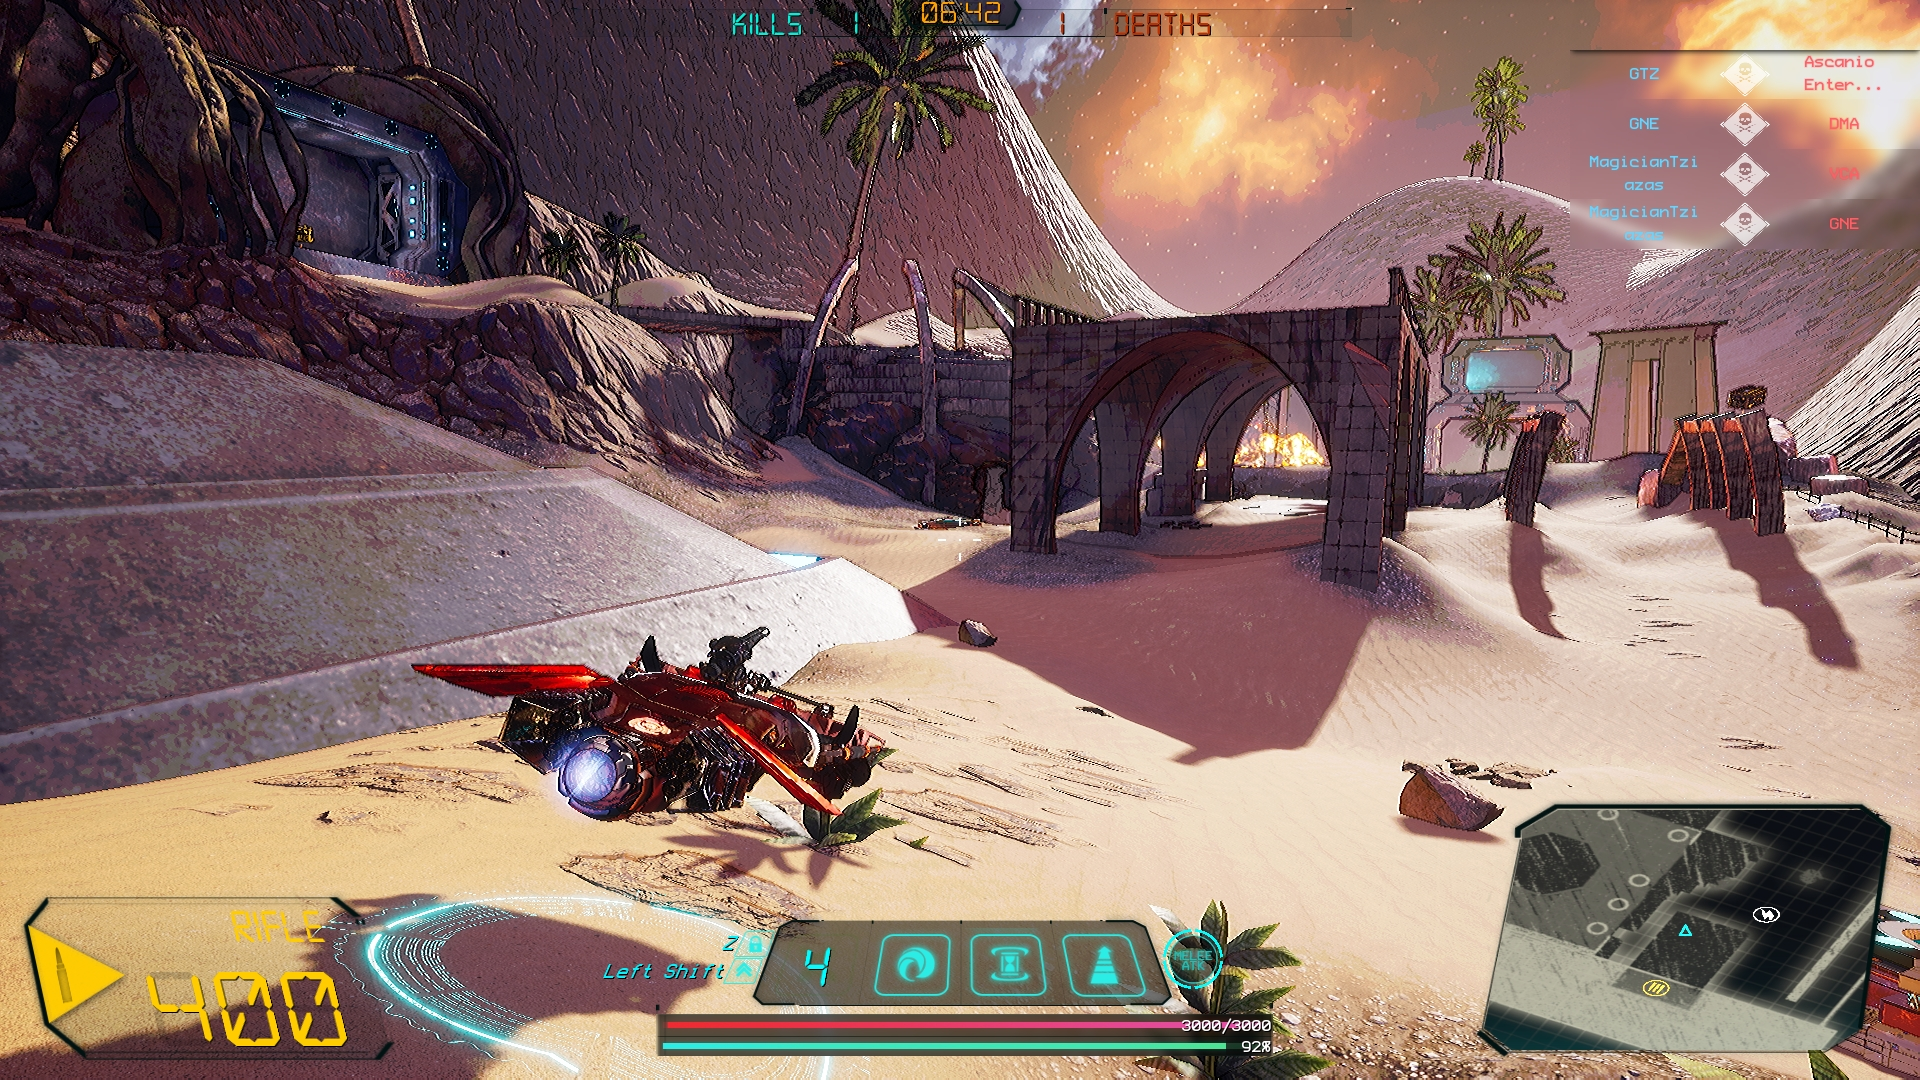 Aquila Plains in game screenshot of Crash Force